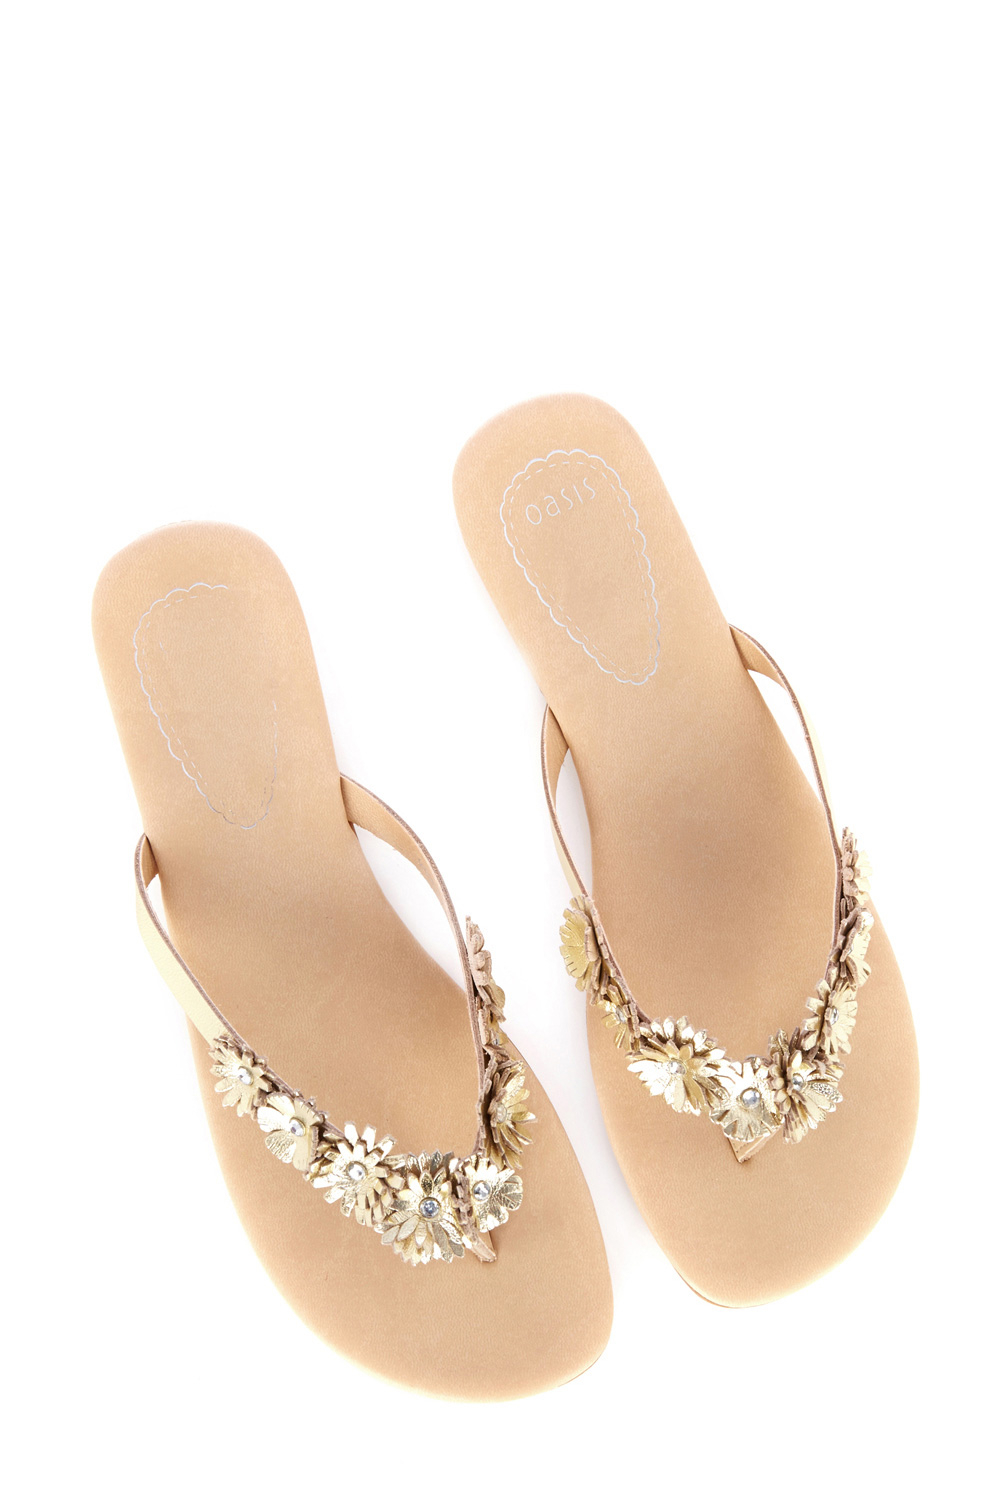 6eeba16cde41 Lyst - Oasis Mimi Leather Flip Flops in Metallic